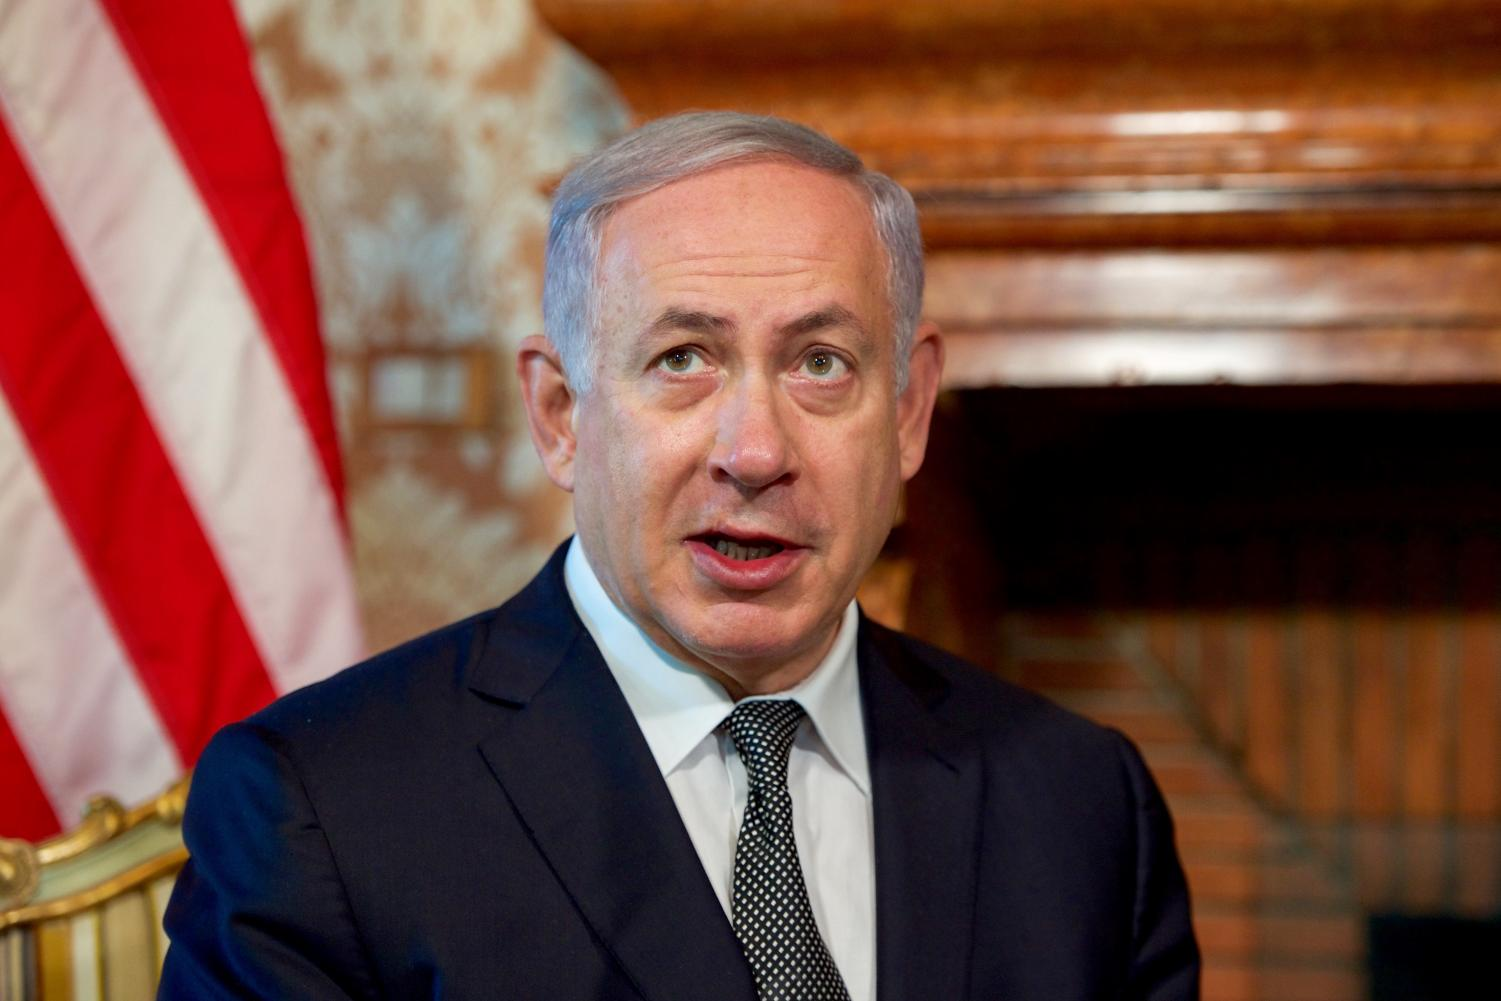 Current Israeli President Benjamin Netanyahu failed to win a the majority government and currently is looking to make a majority coalition.